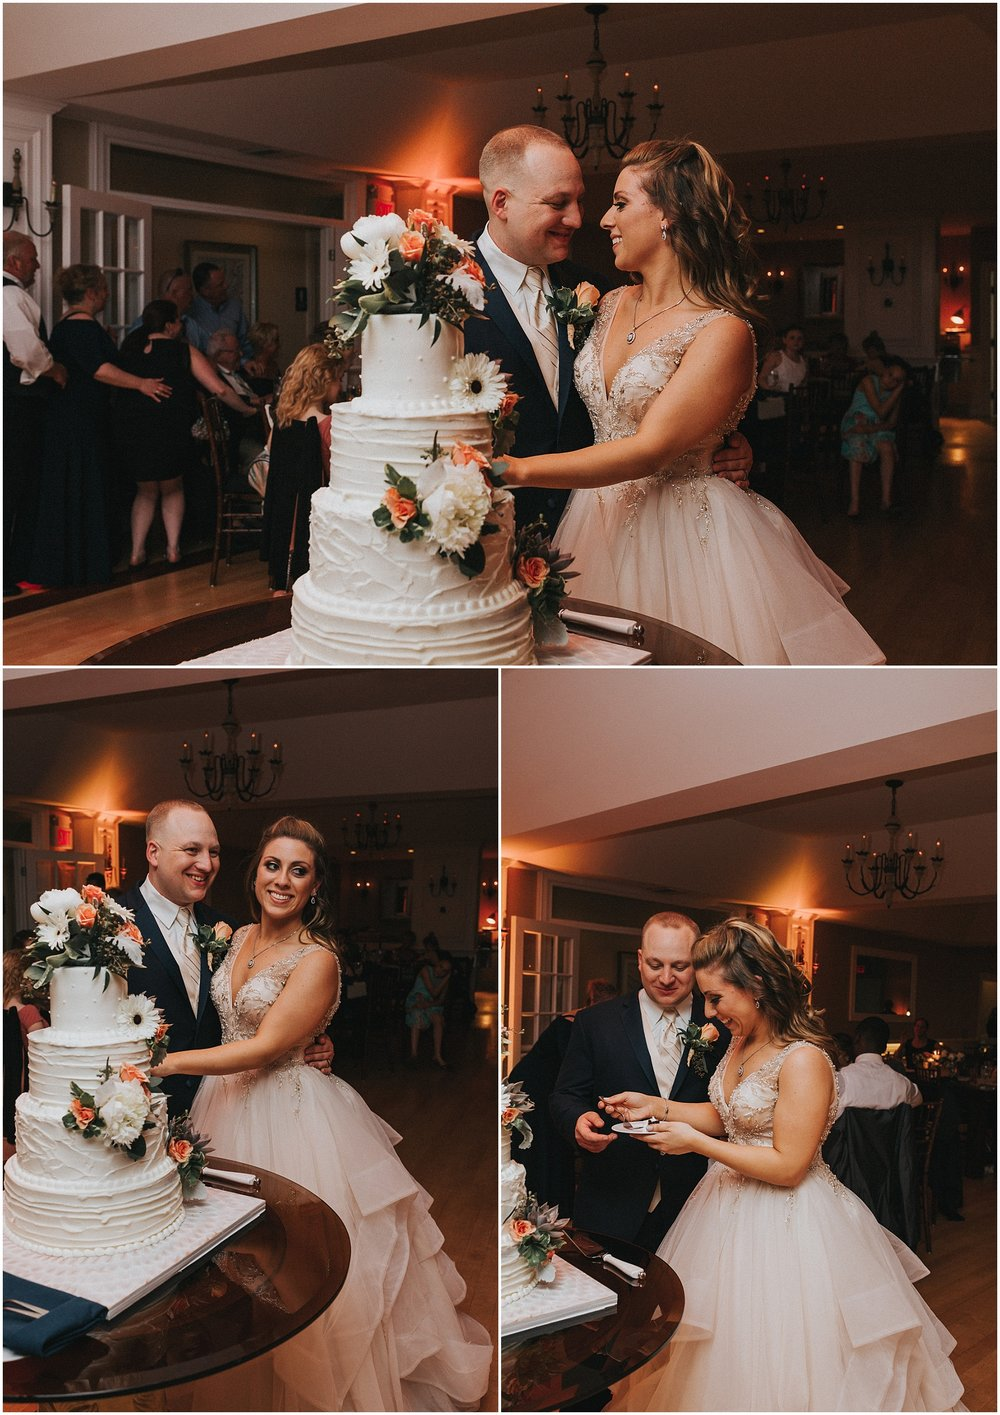 Bride and Groom cake cutting during wedding reception at Rock Island Lake Club in New Jersey